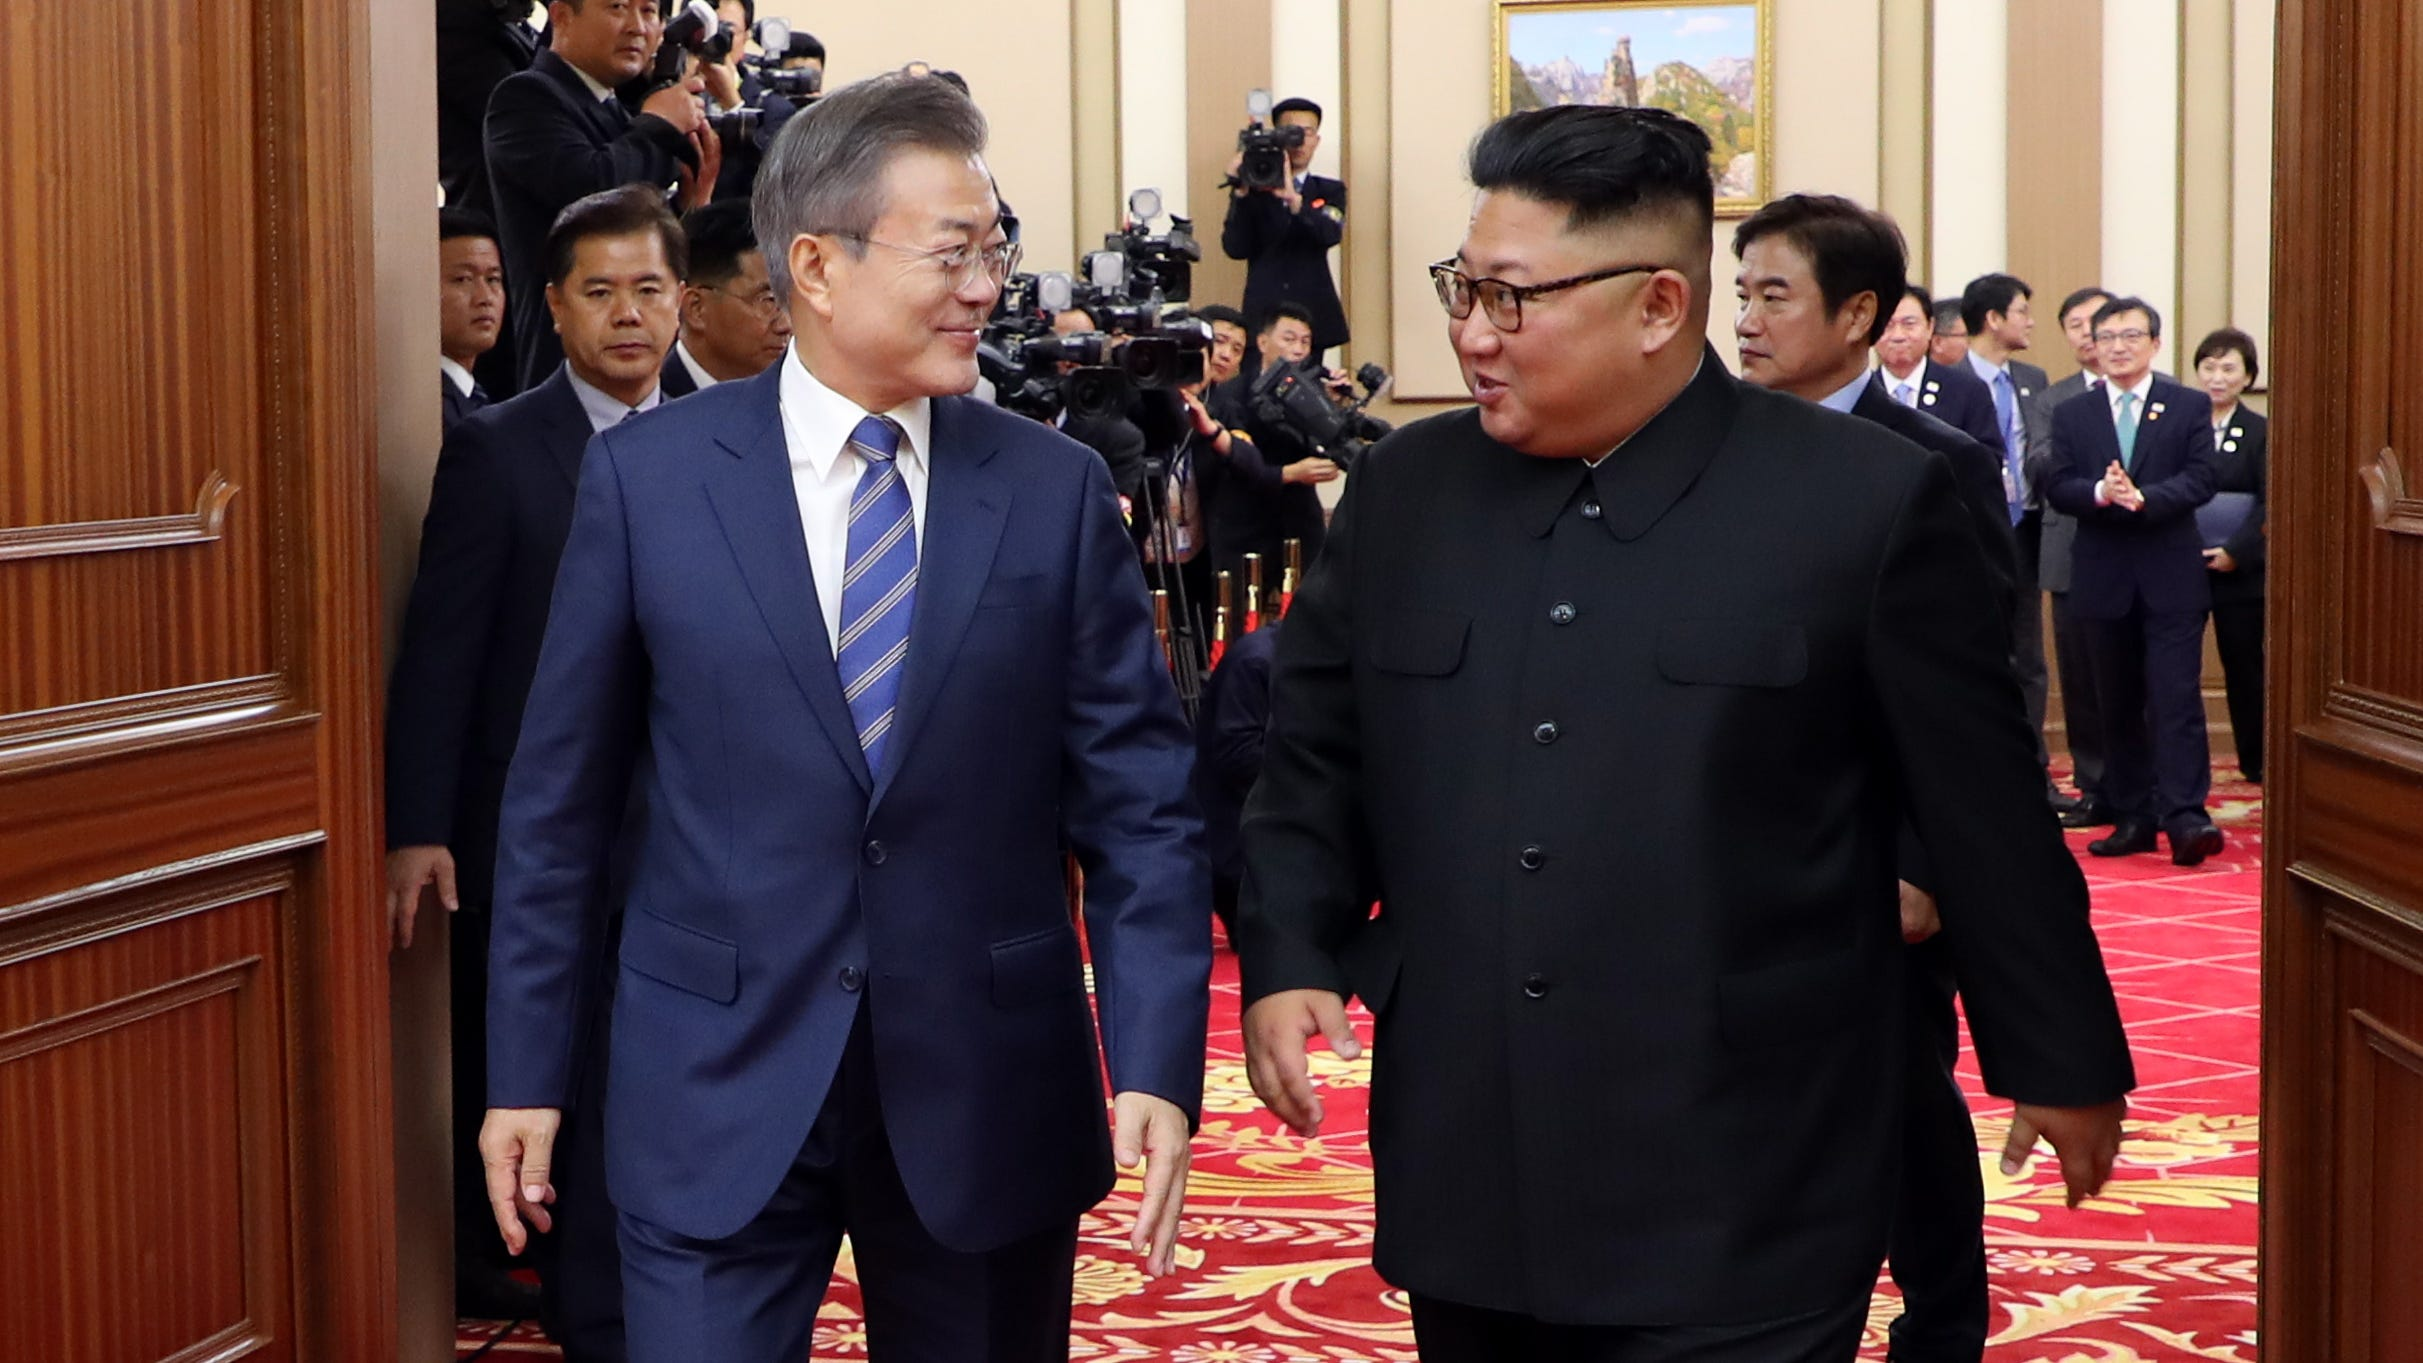 South Korean president Moon Jae-in (L) talks with North Korean leader Kim Jong Un as they leave after a press conference in Pyongyang, North Korea, 19 September 2018.